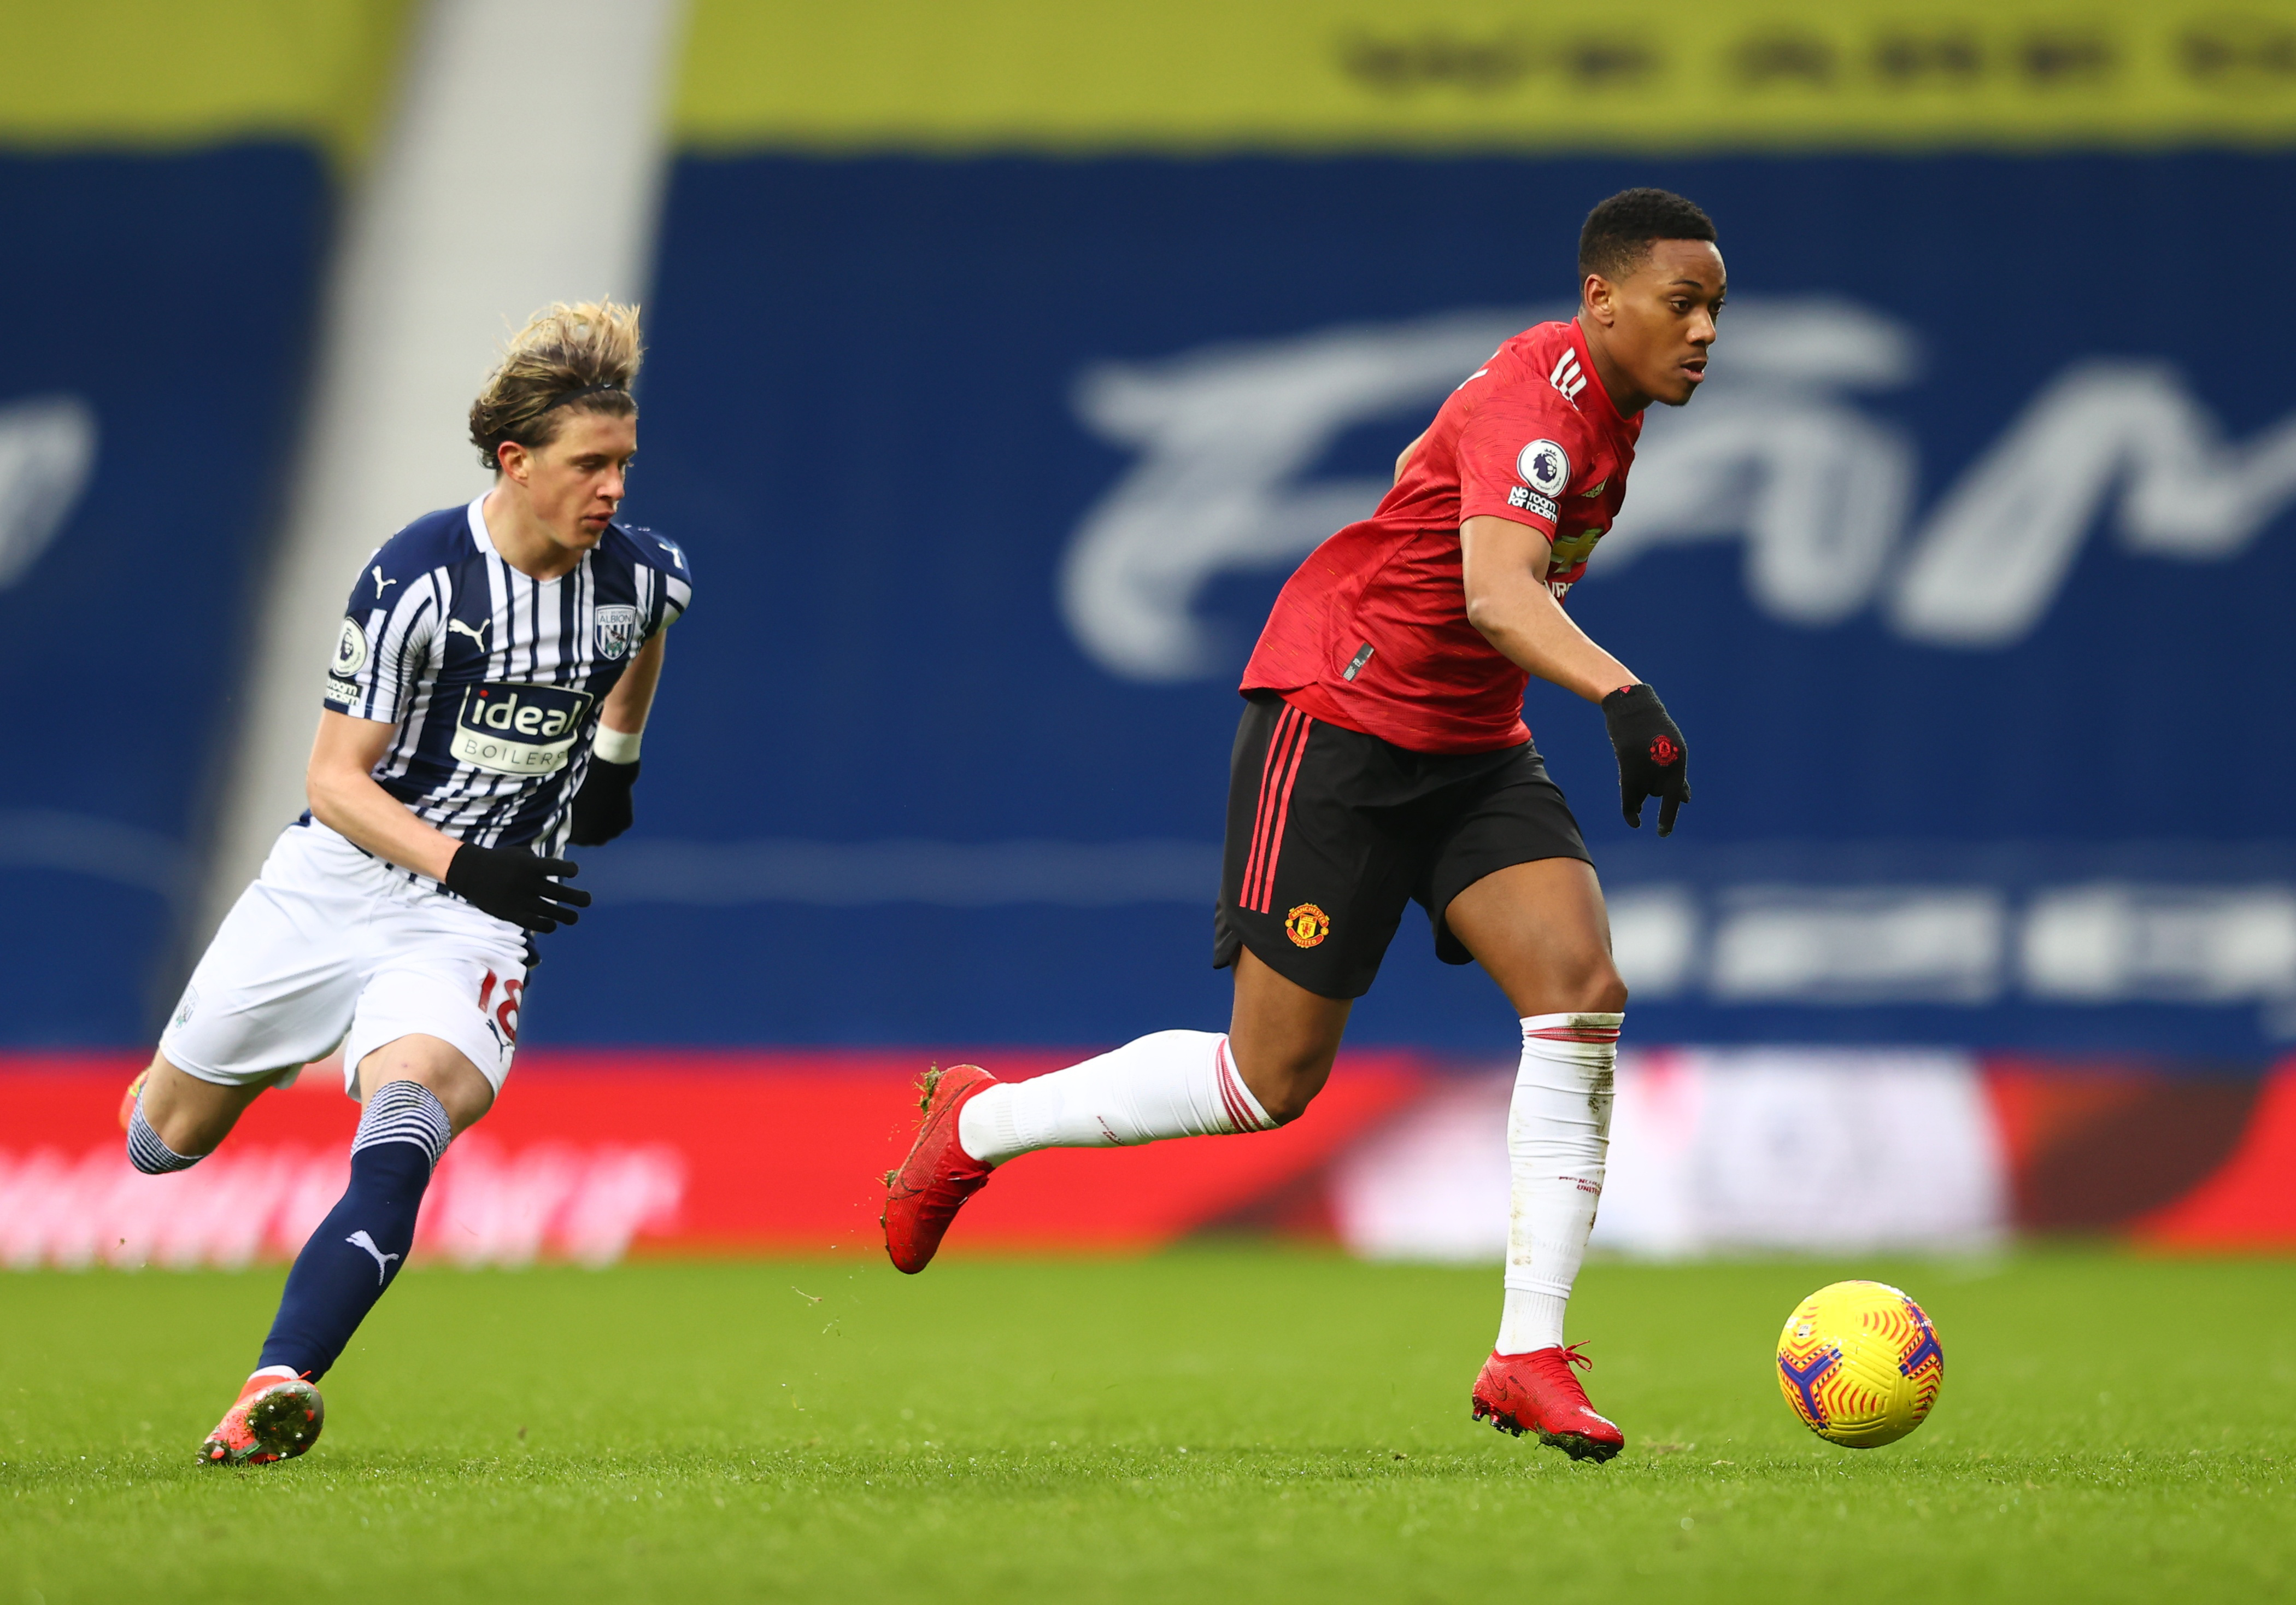 Soccer Football - Premier League - West Bromwich Albion v Manchester United - The Hawthorns, West Bromwich, Britain - February 14, 2021 West Bromwich Albion's Conor Gallagher in action with Manchester United's Anthony Martial Pool via REUTERS/Michael Steele